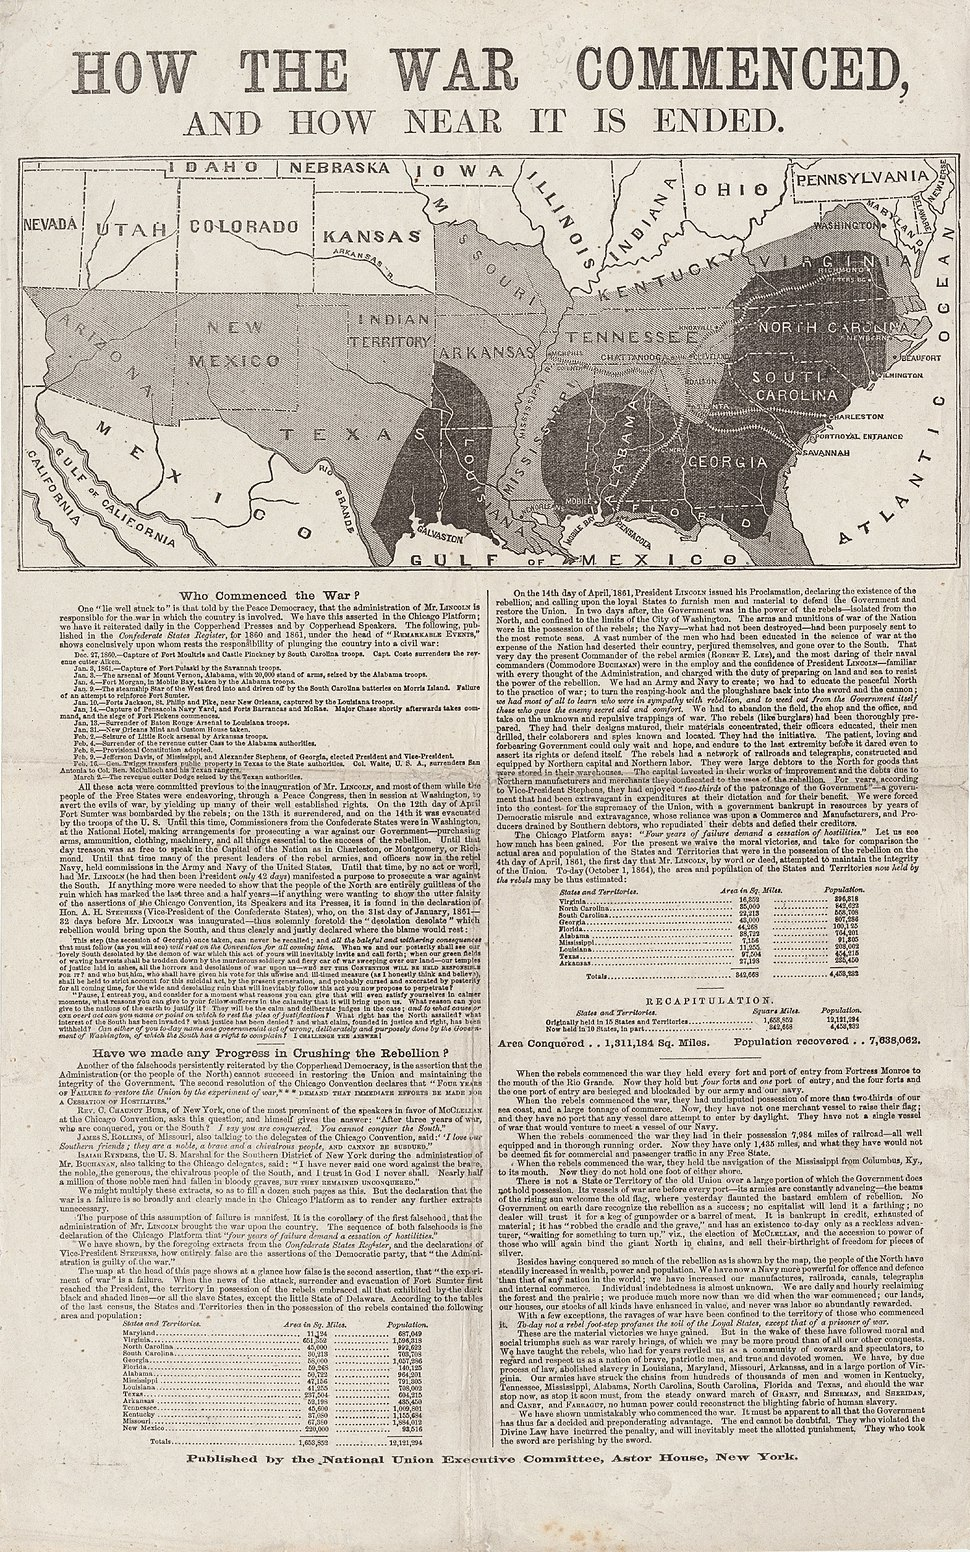 How the War Commenced and How Near It Is Ended 1864 Cornell CUL PJM